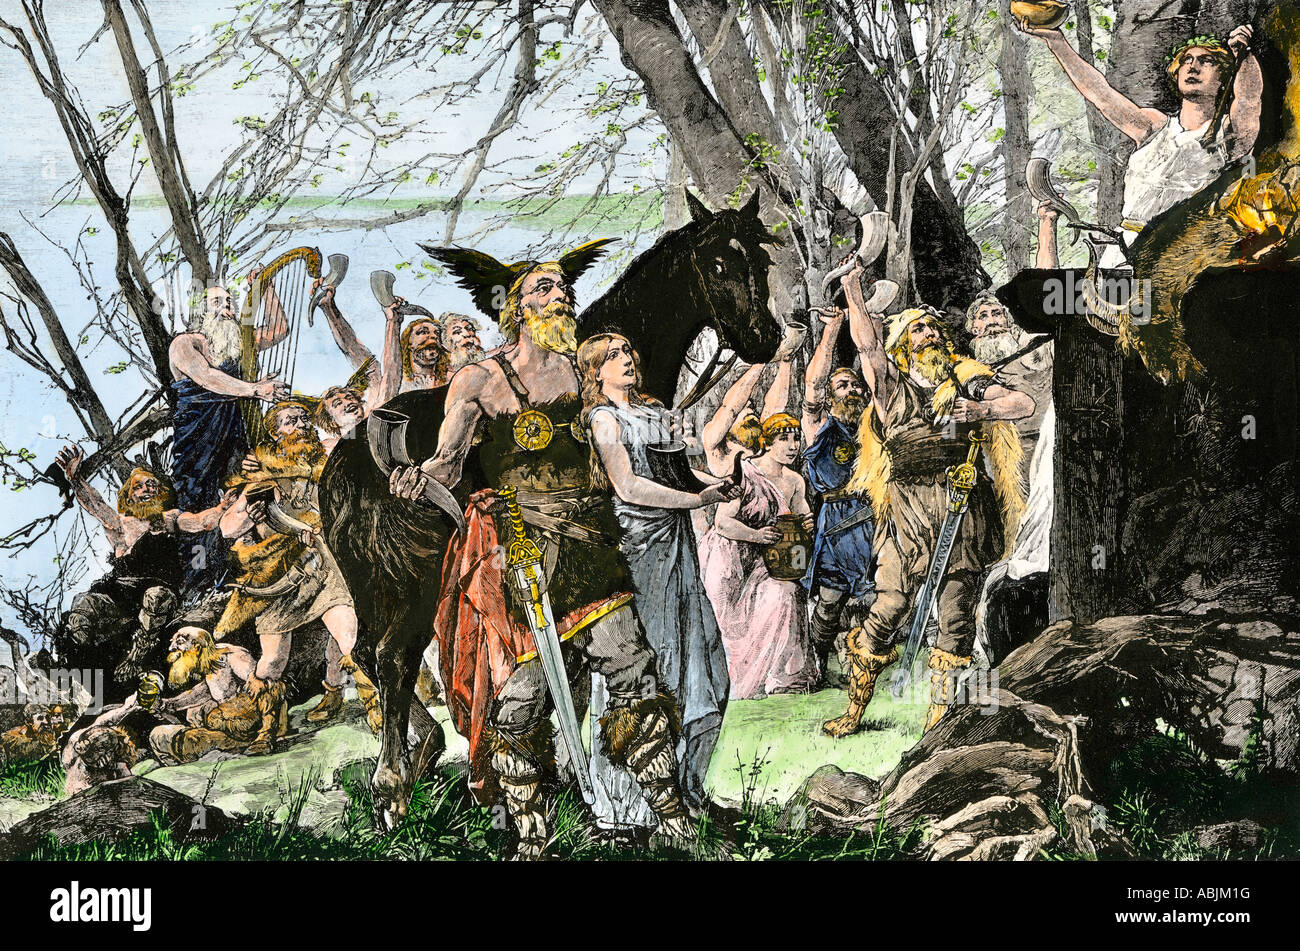 Franks offering an animal sacrifice before invading Gaul. Hand-colored woodcut - Stock Image